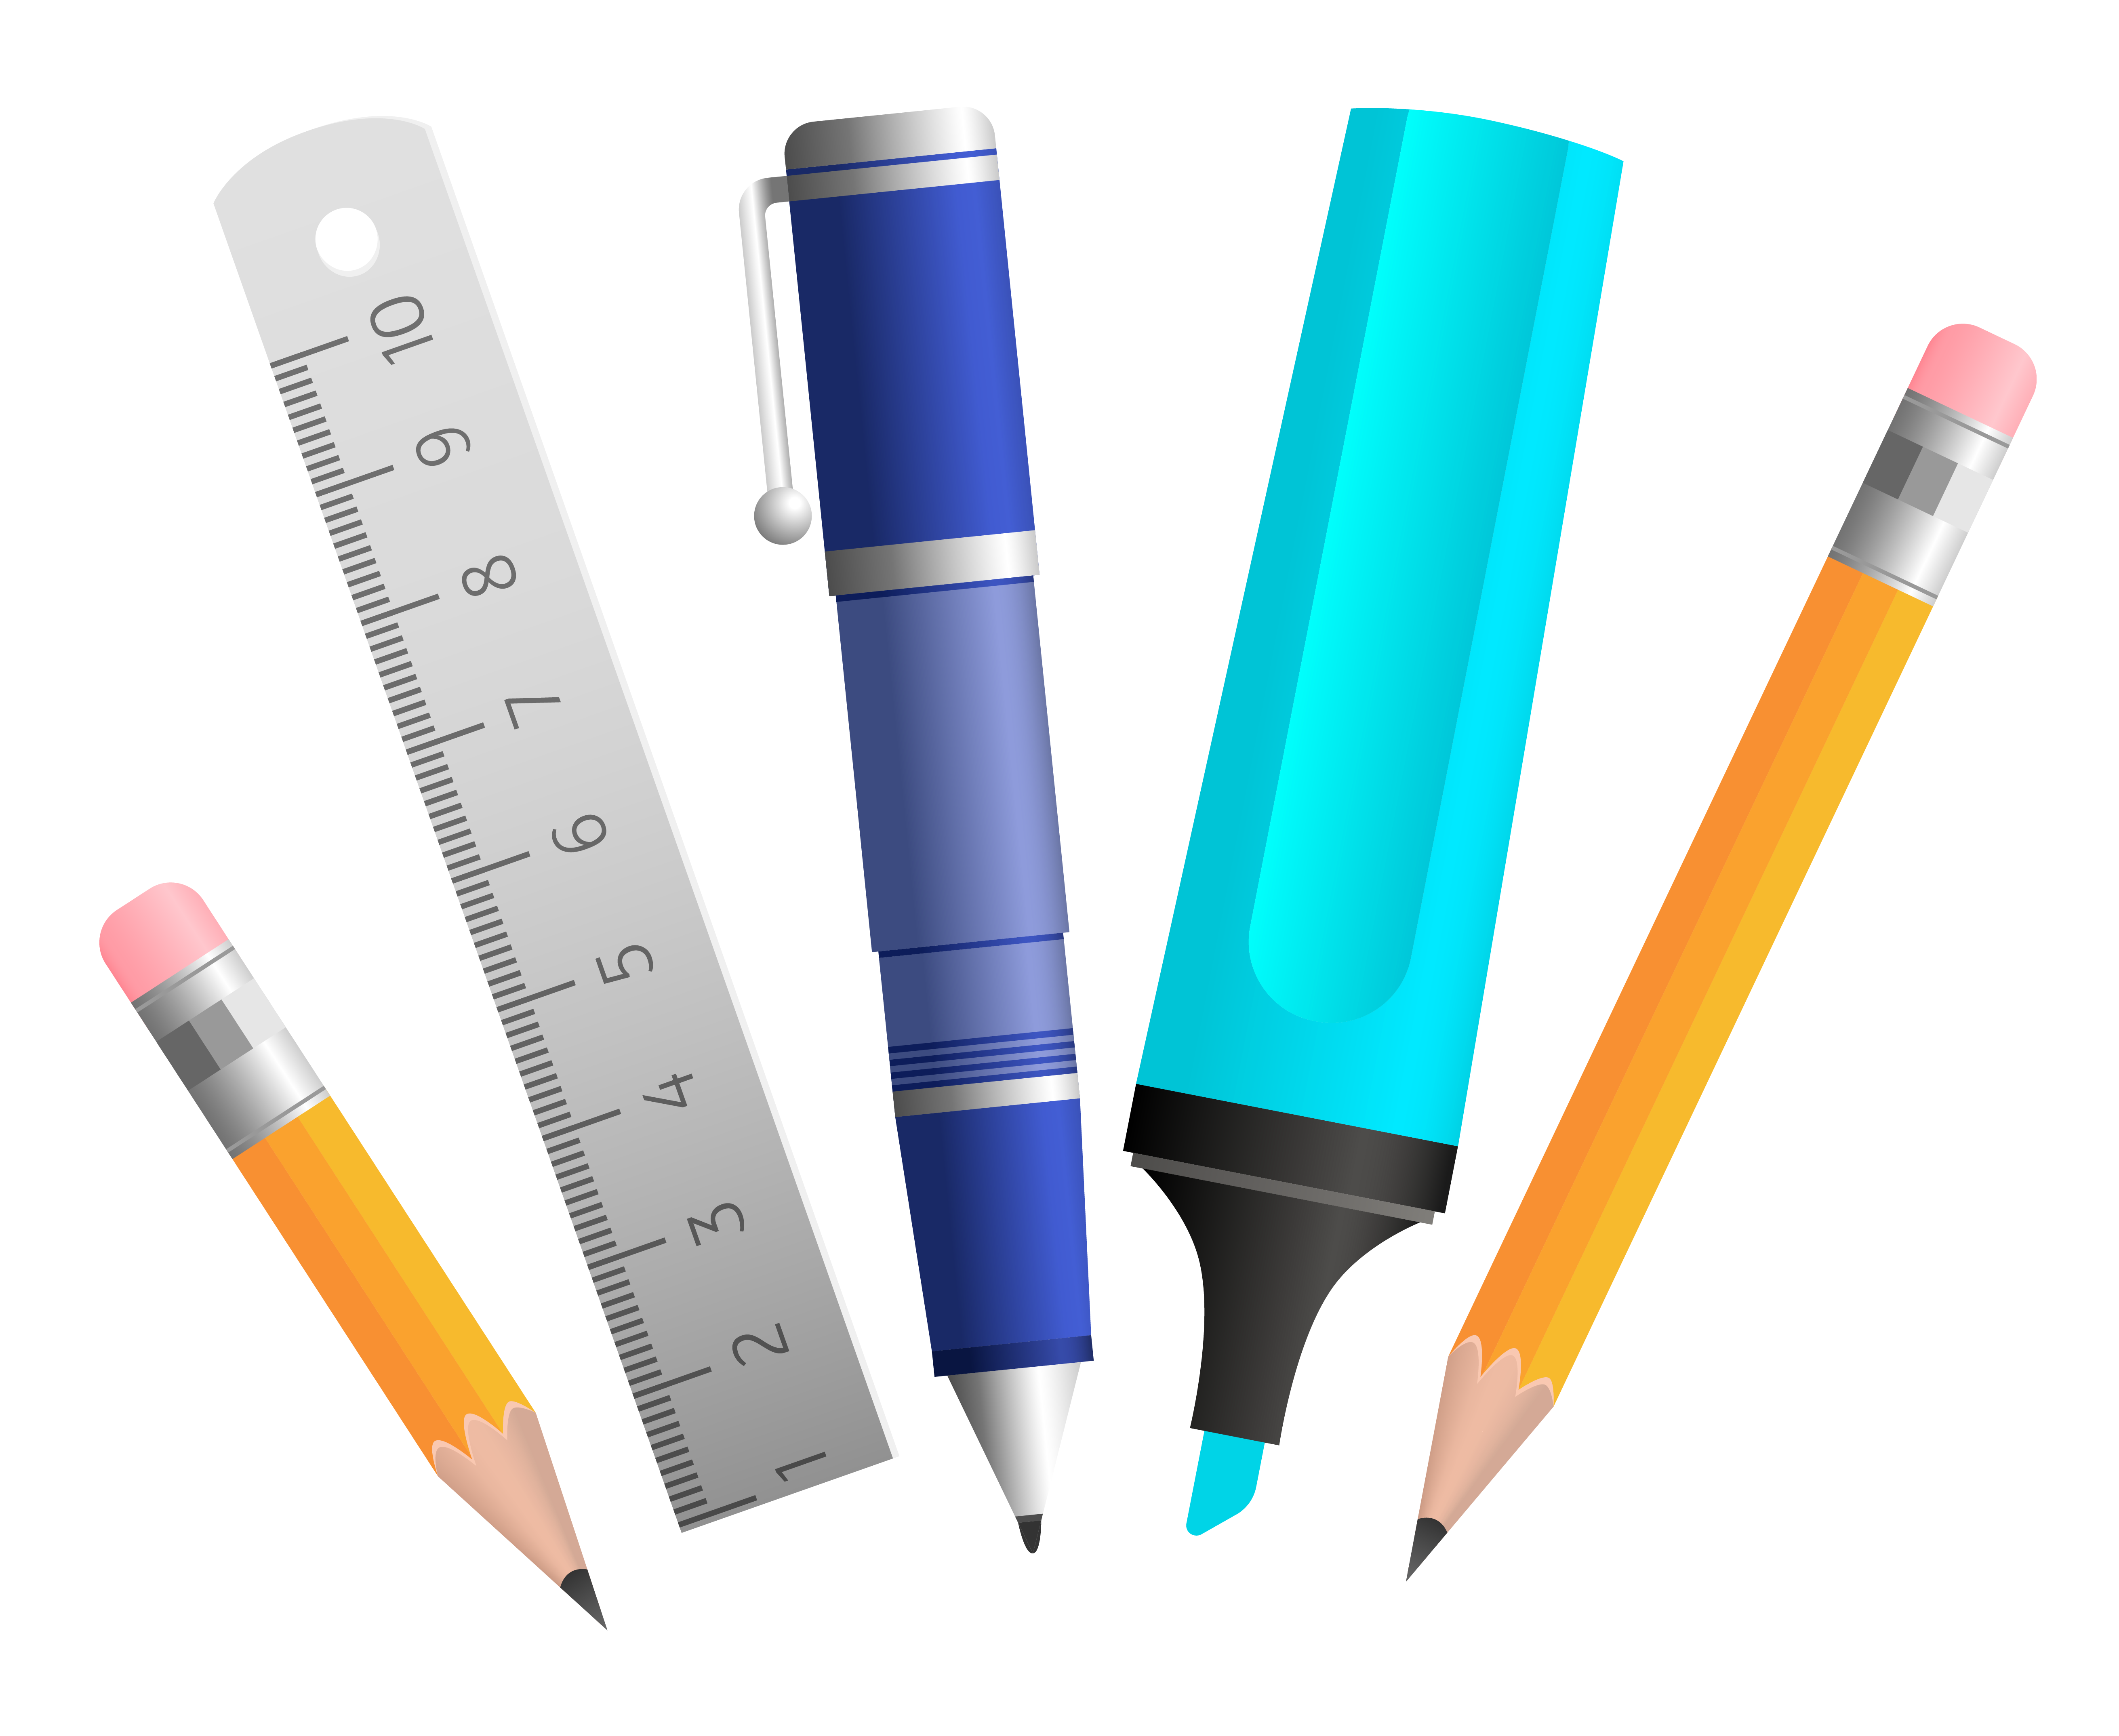 School tools clipart clipart freeuse stock School Tools PNG Picture | Gallery Yopriceville - High-Quality ... clipart freeuse stock